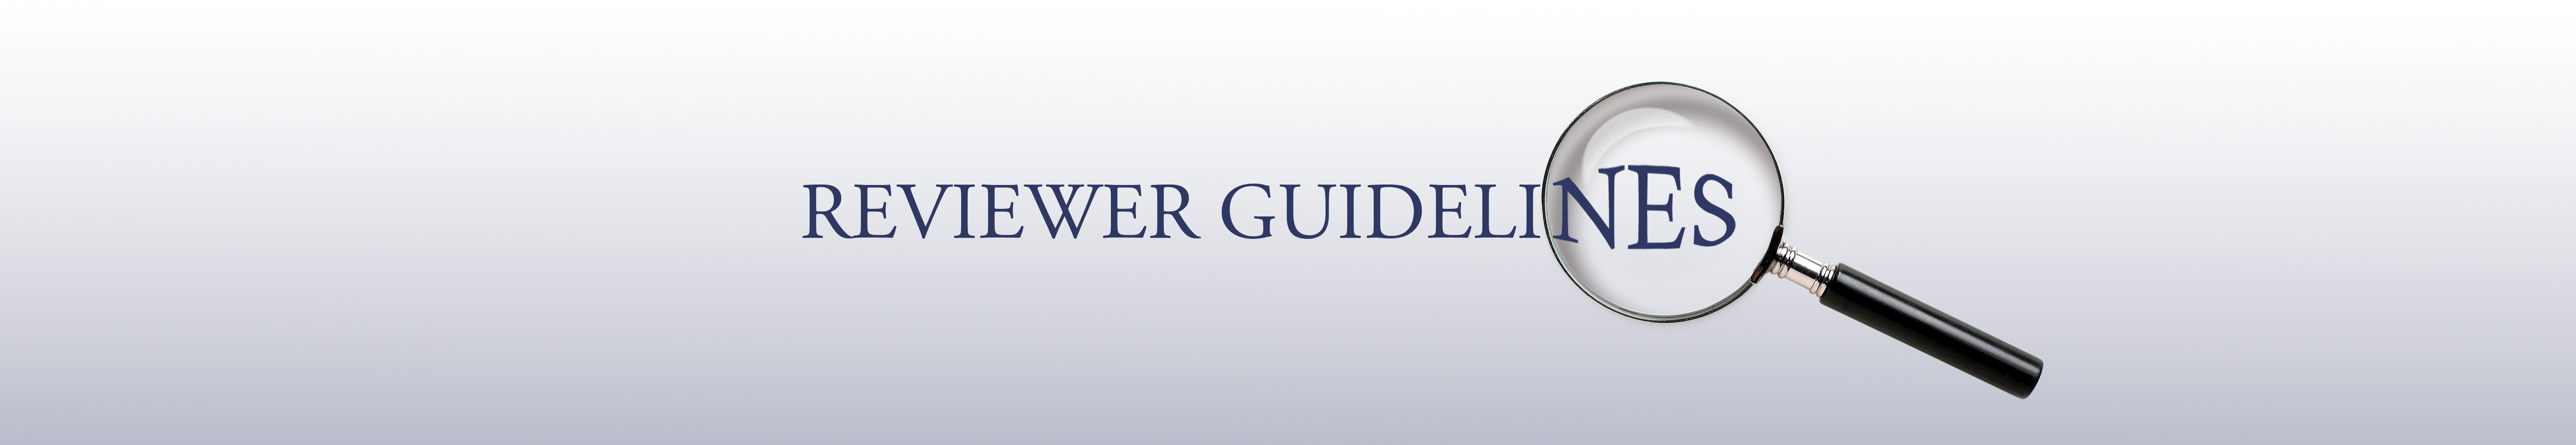 Reviewer-Guideline